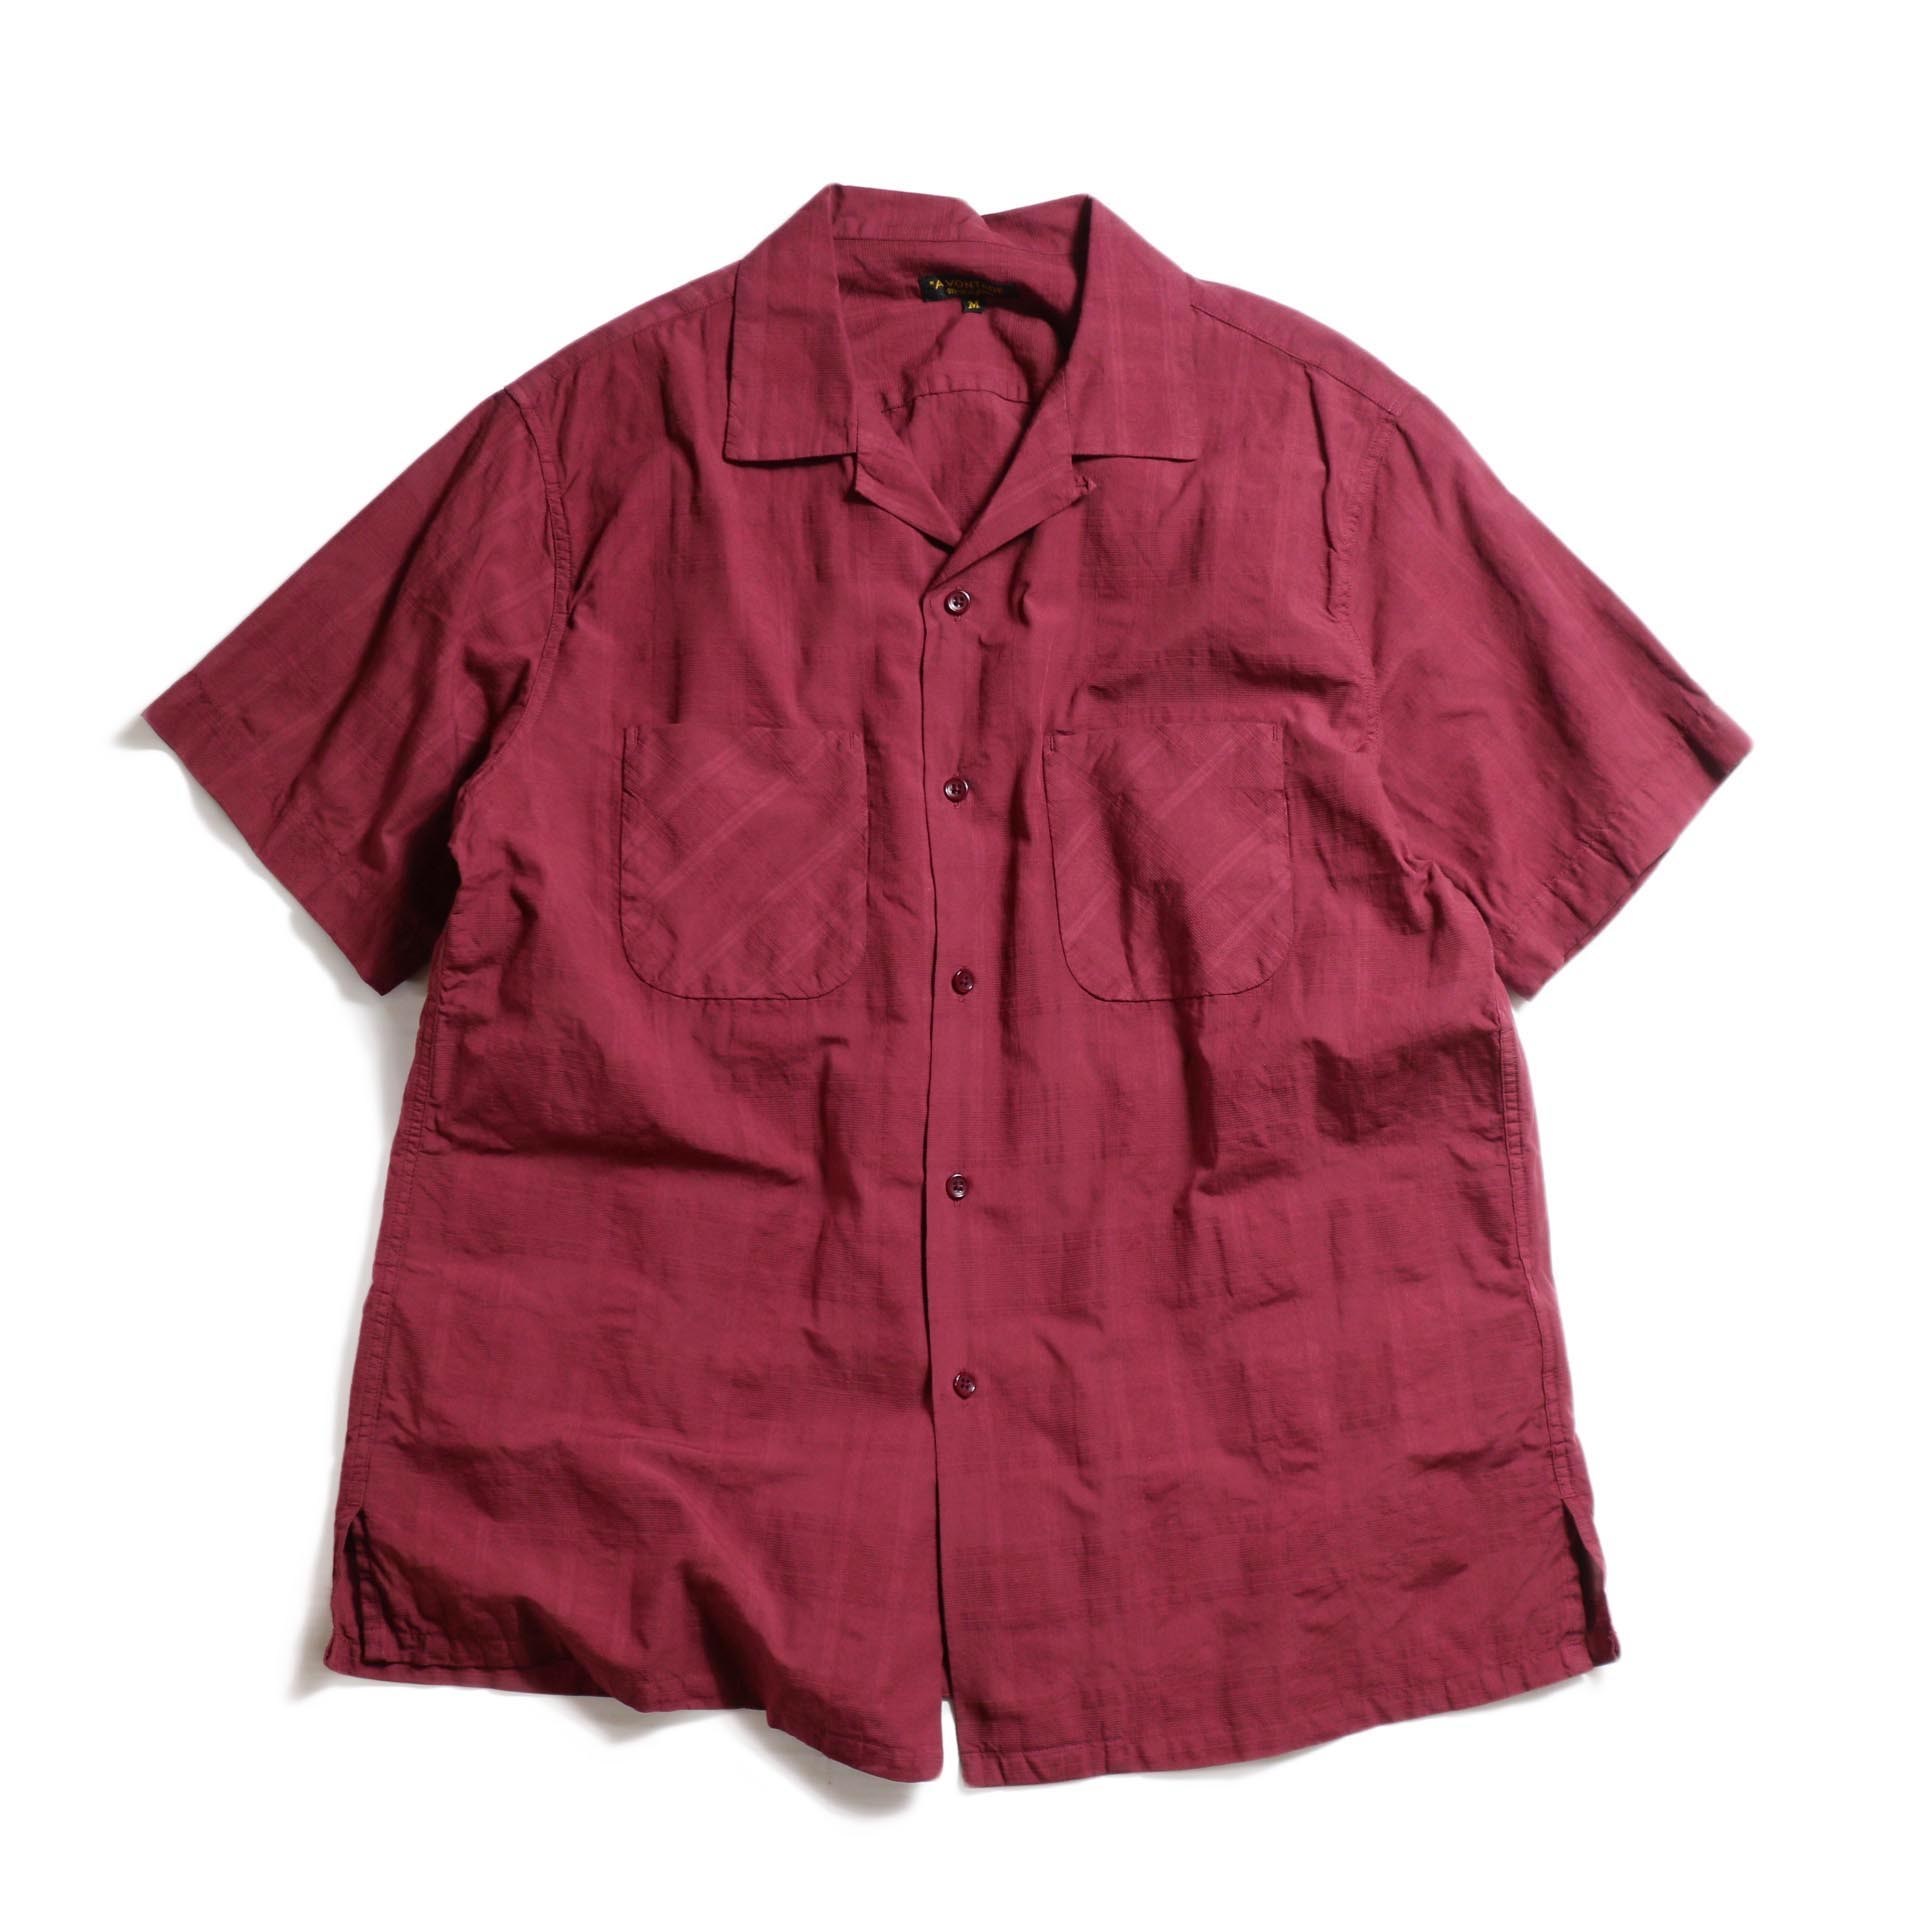 A VONTADE / Dobby Open Shirts S/S -Bordeaux